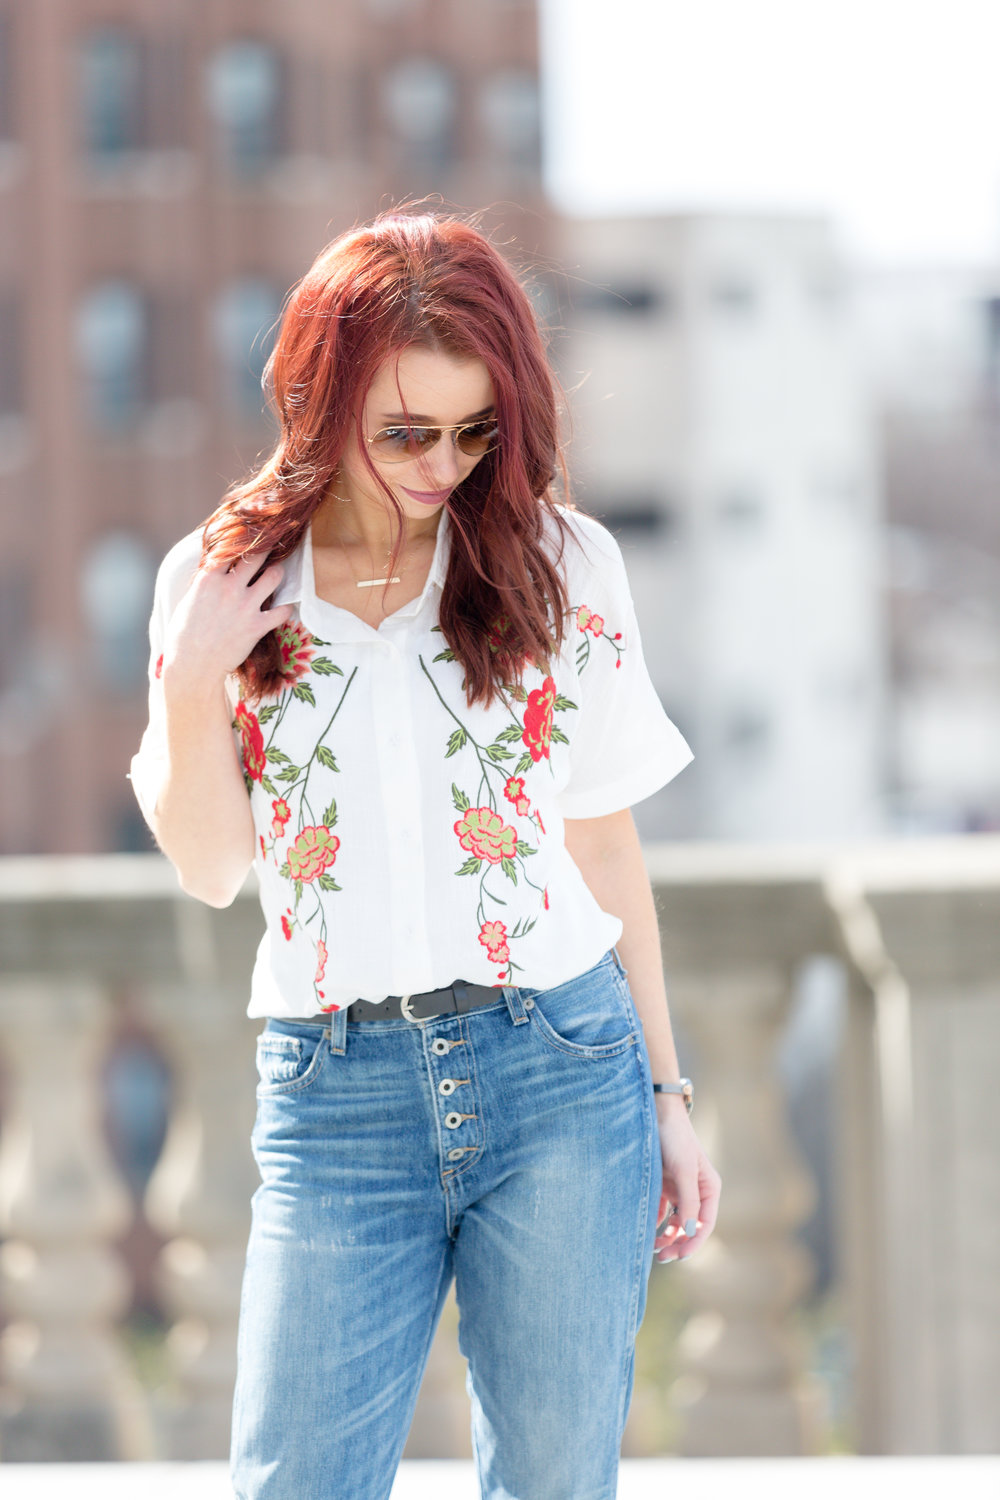 https://www.raelynns.com/collections/tops/products/31130es-rose-embroidered-top-whi-f